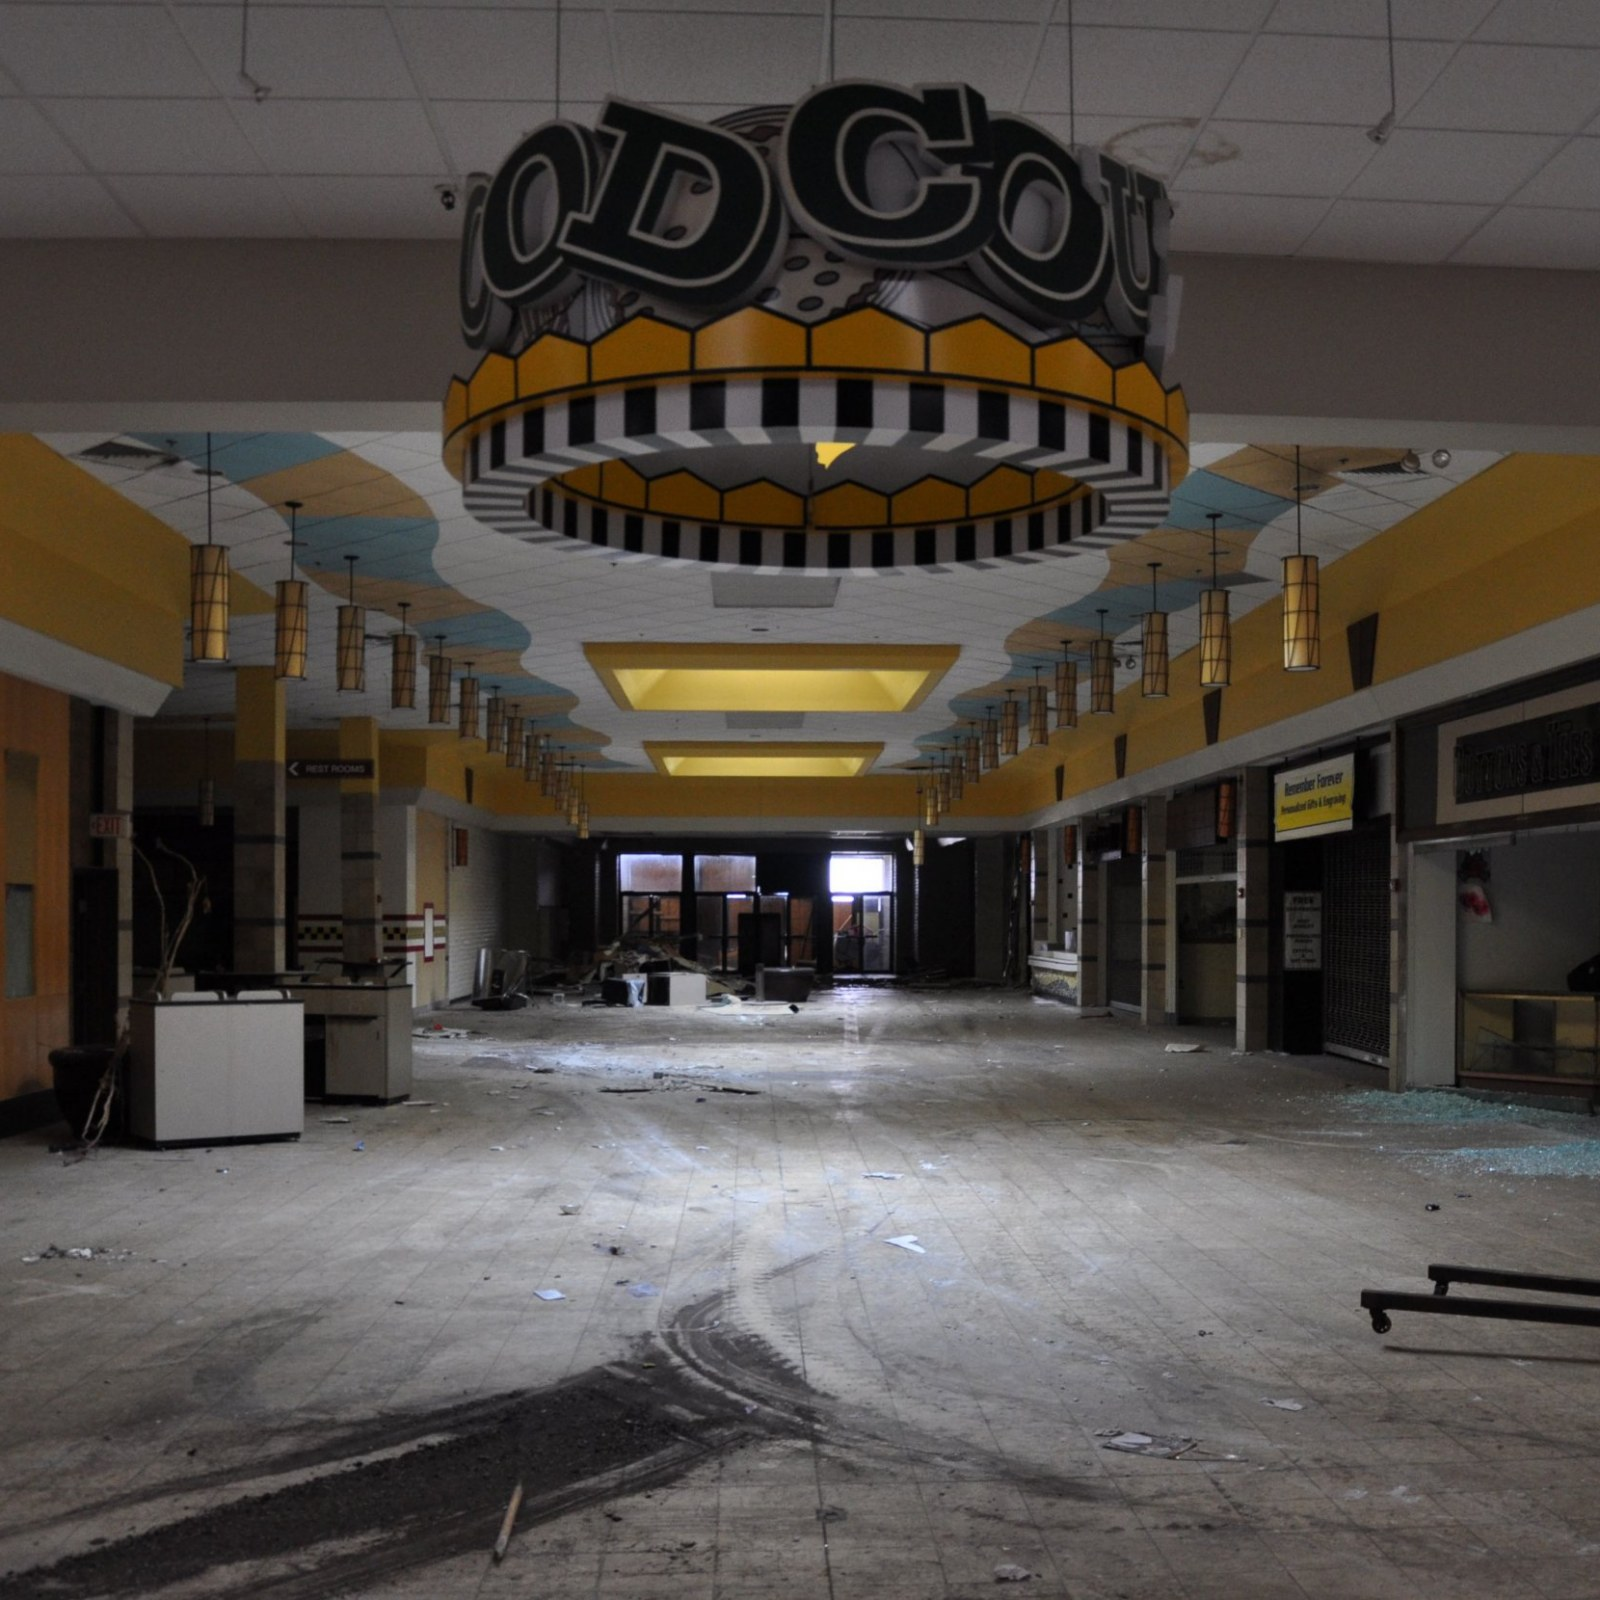 Death of Retail? Eerie Abandoned Malls Become Amazon Fulfillment Centers